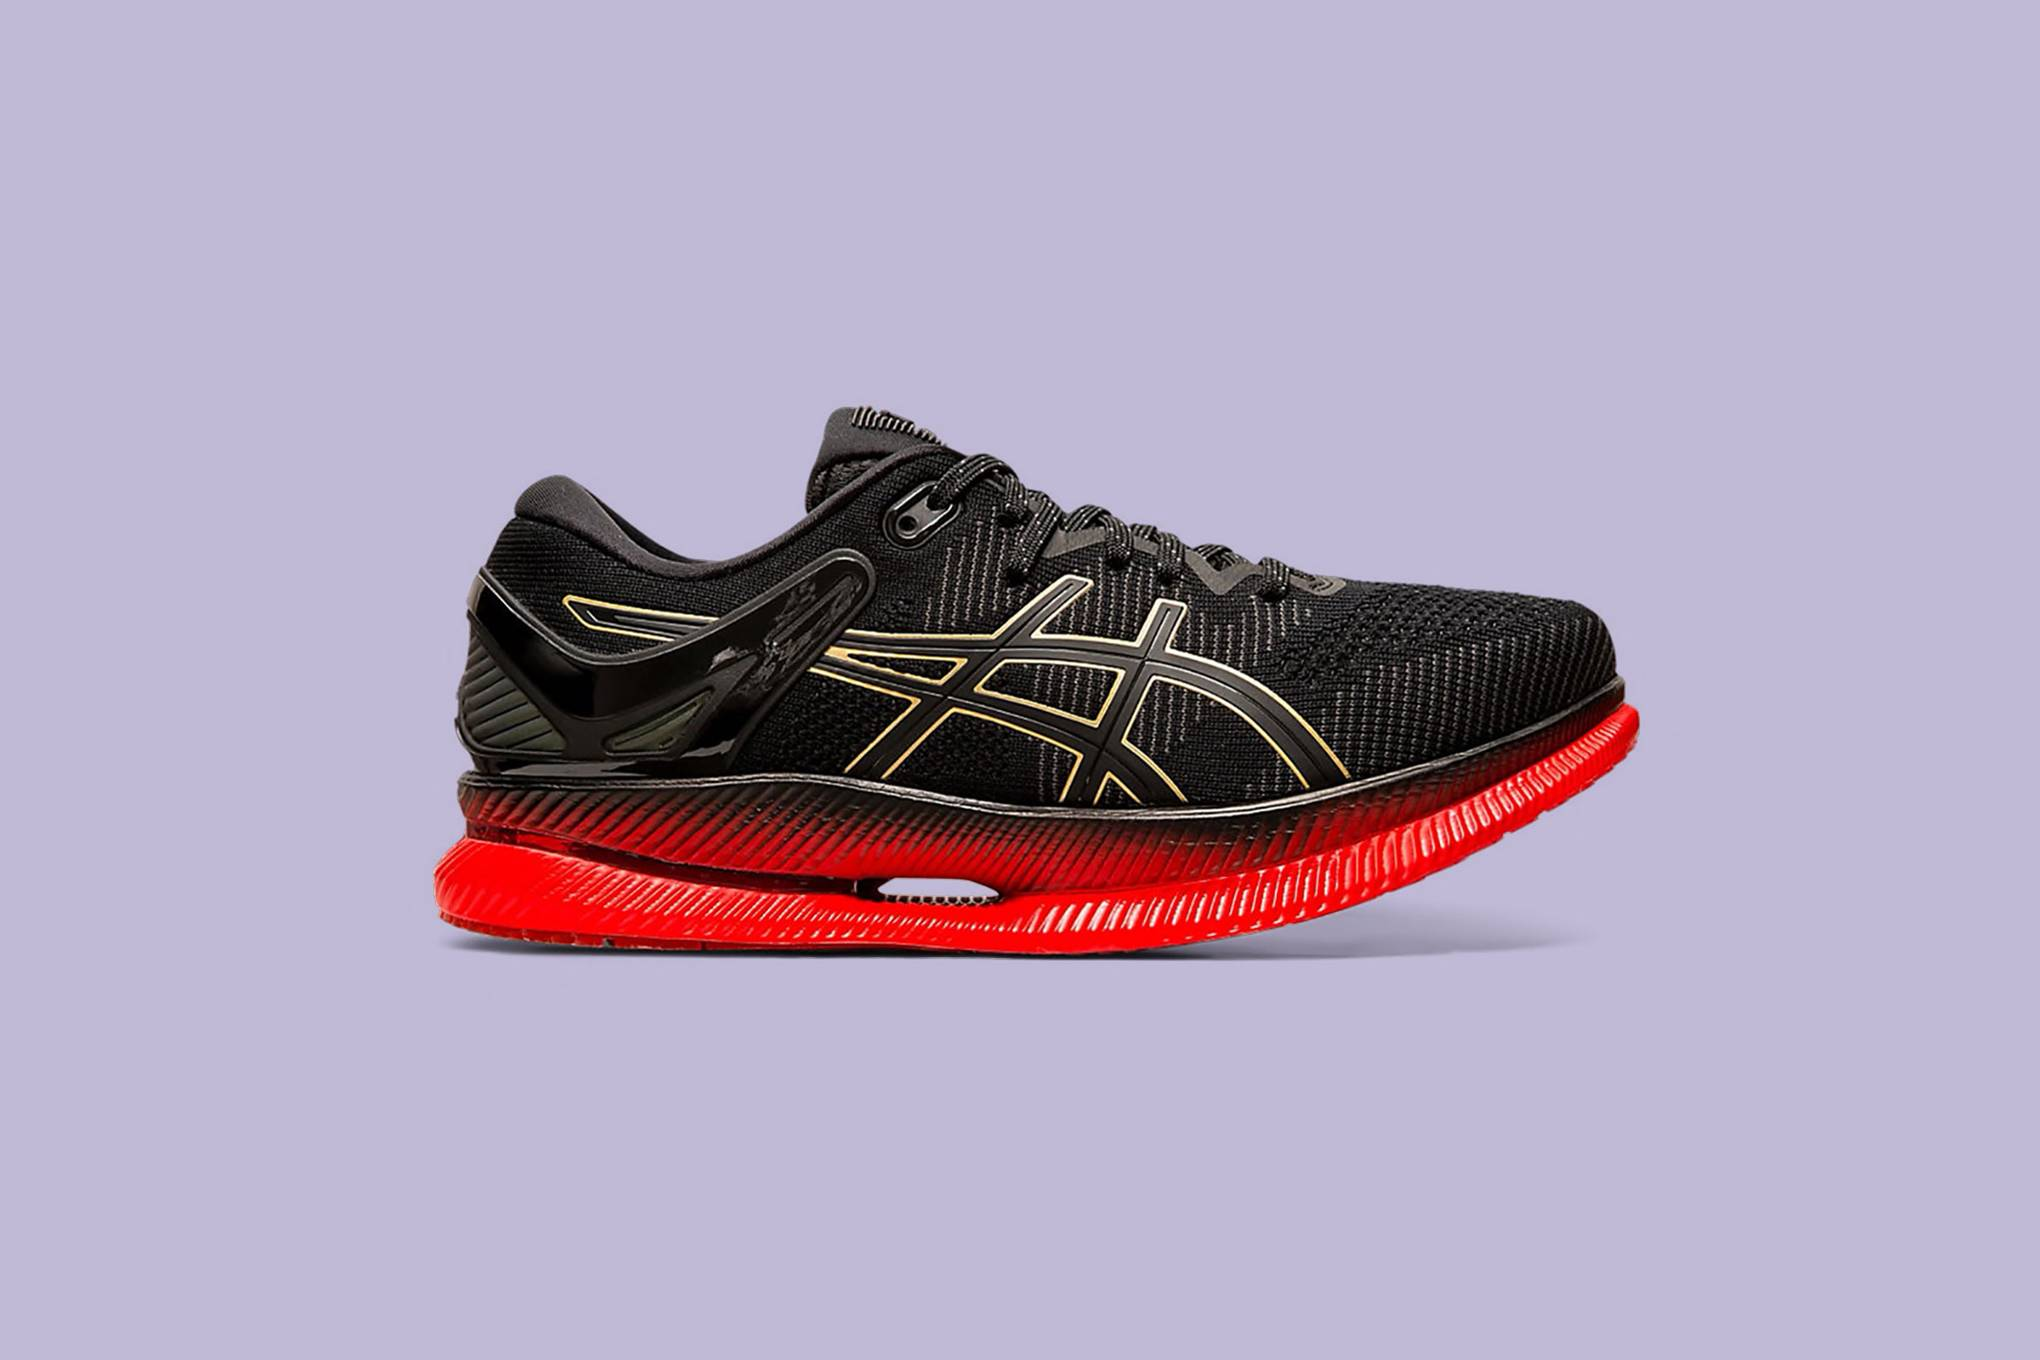 best service c27f8 0bb8f The best running shoes you can buy in 2019 | WIRED UK